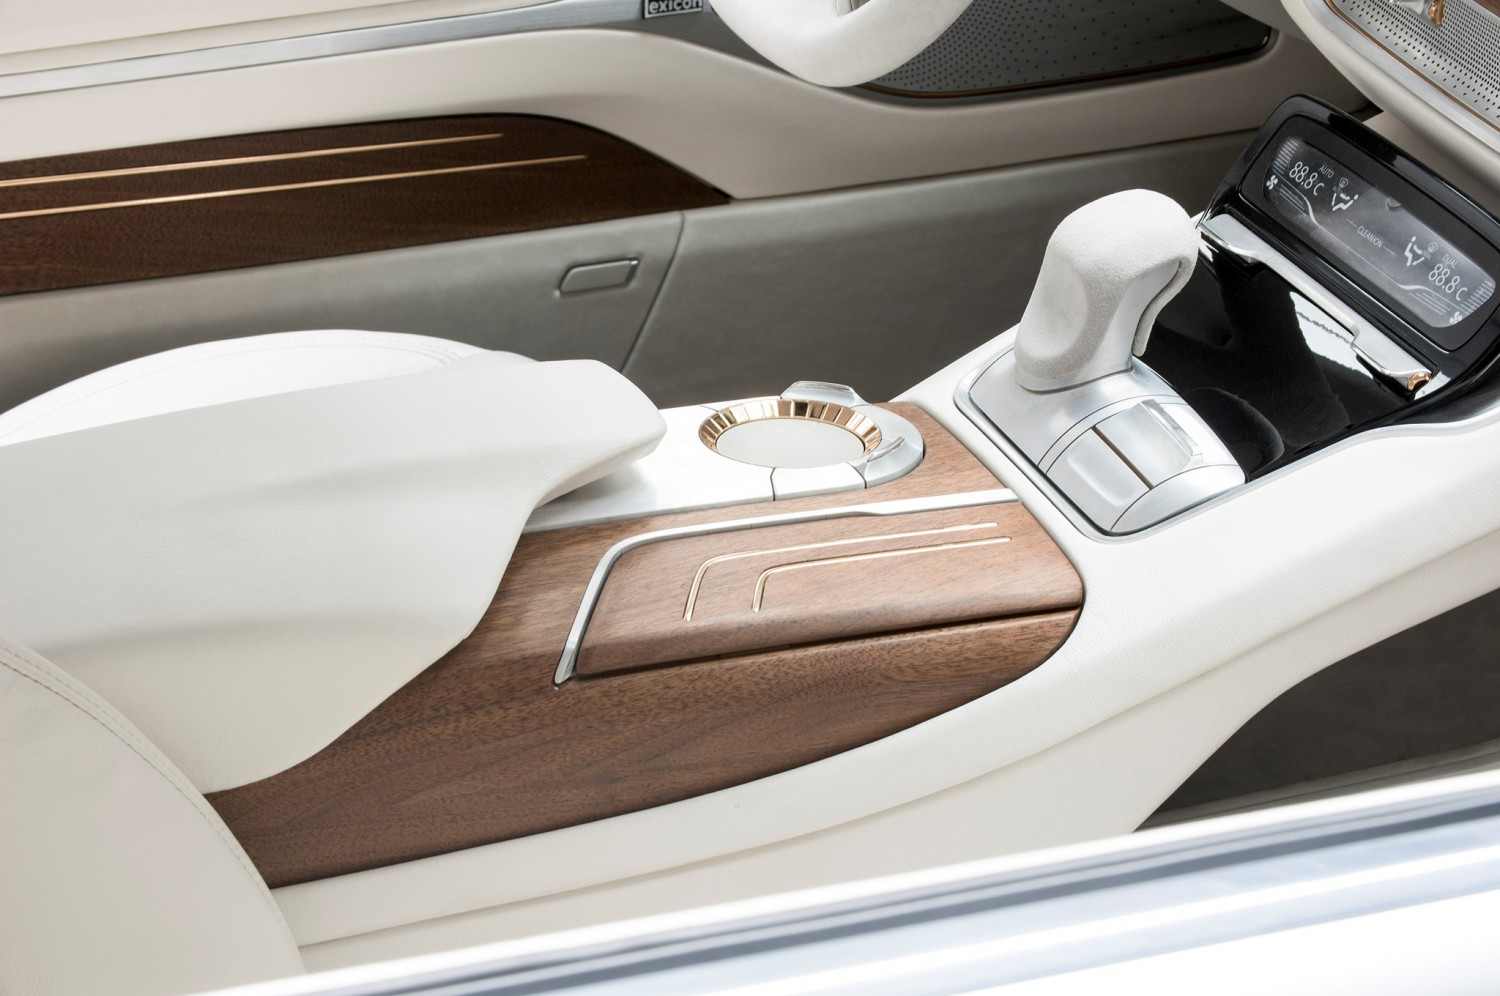 hyundai-vision-g-coupe-concept-door-detail-02